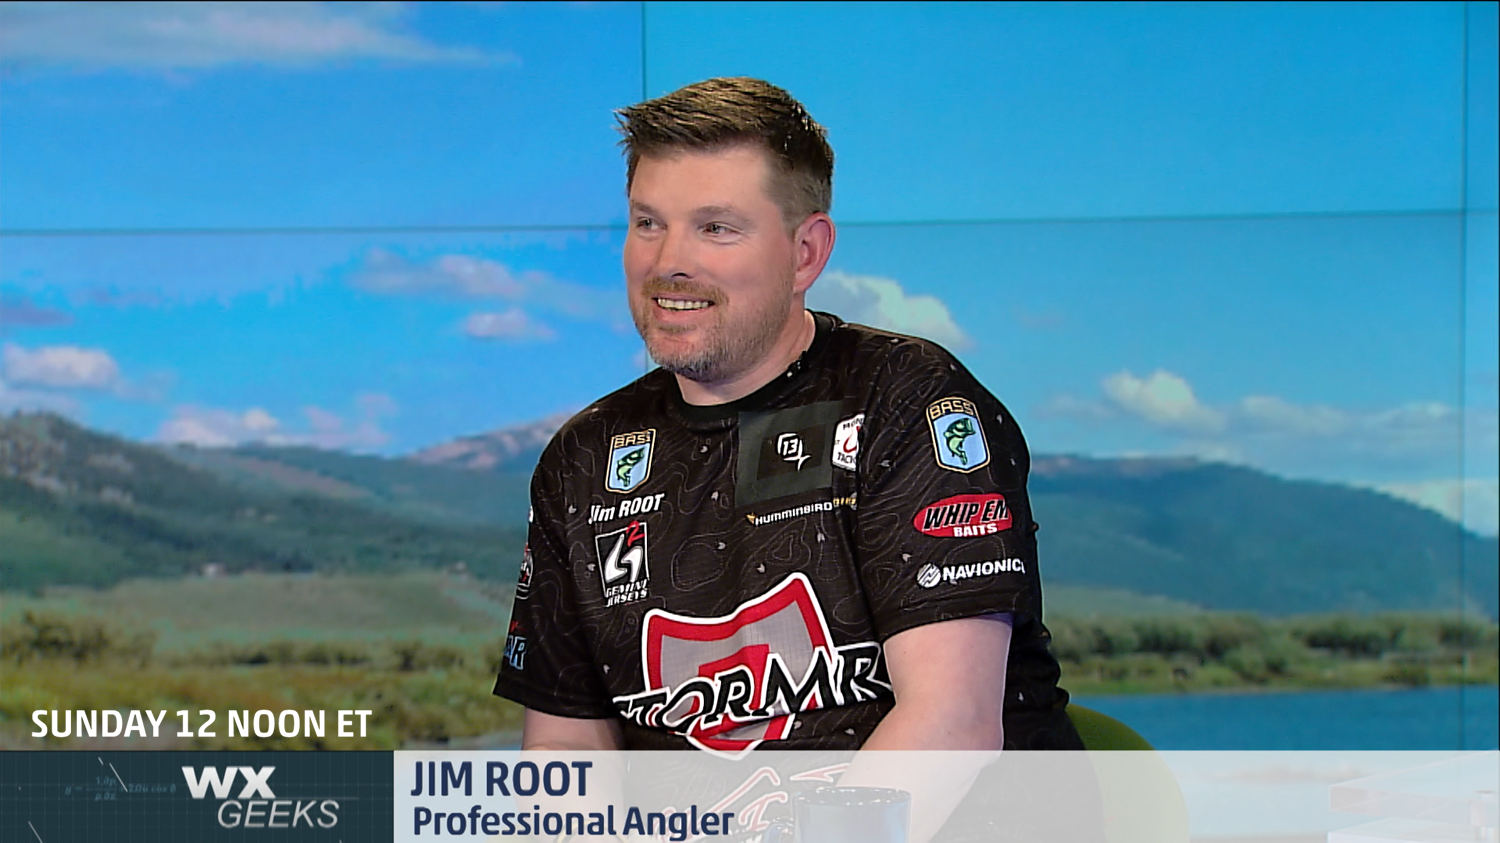 jim root fishing on the weather channel